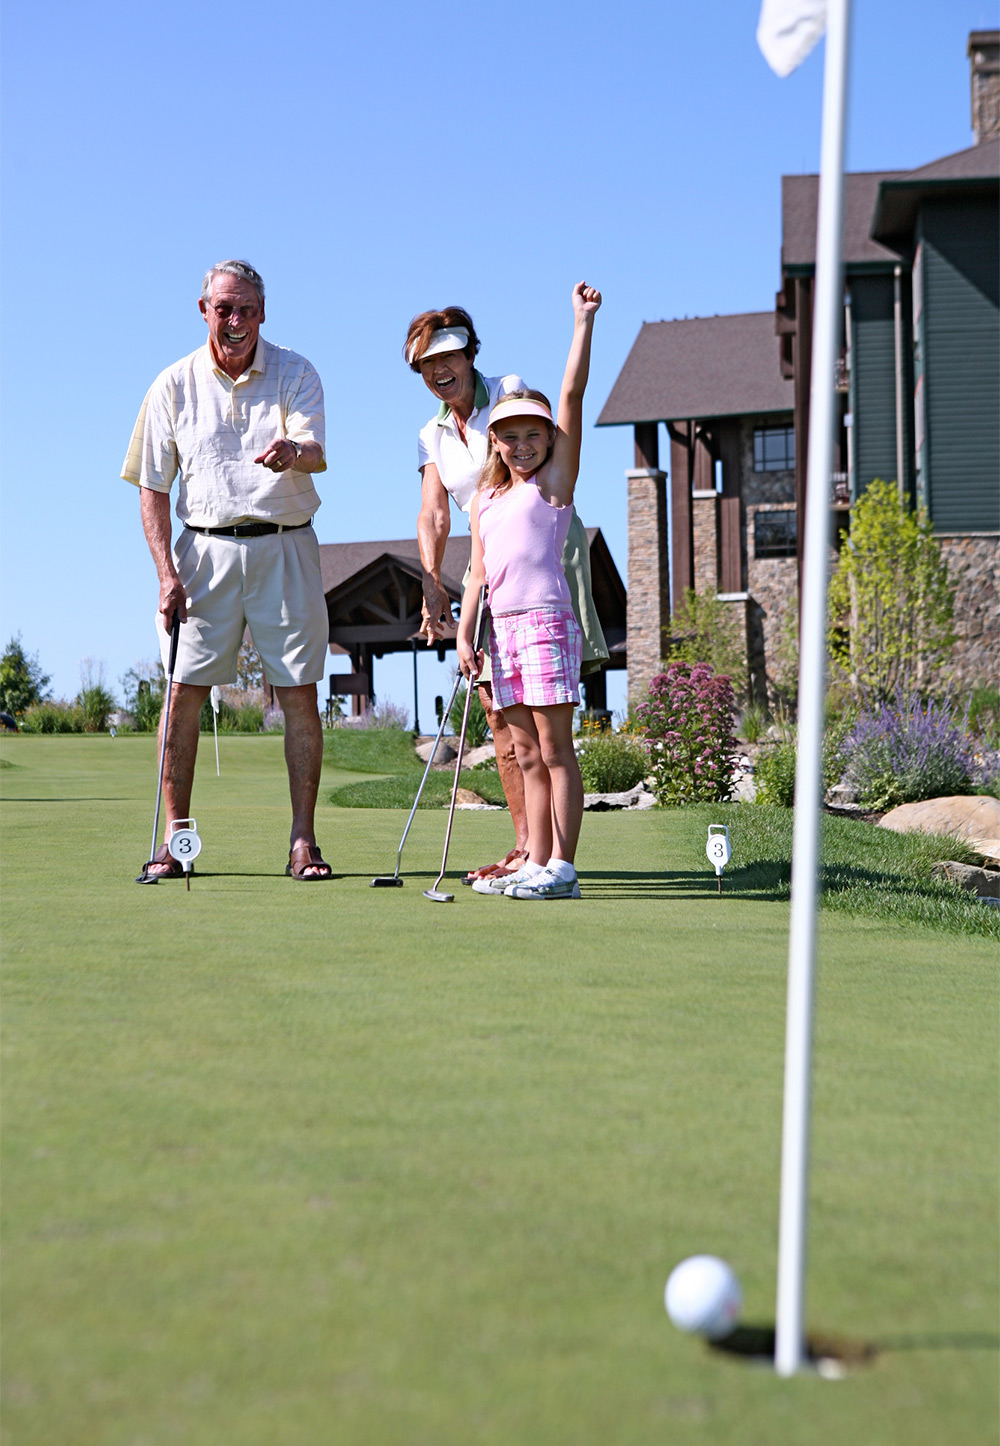 crystal spring family playing golf